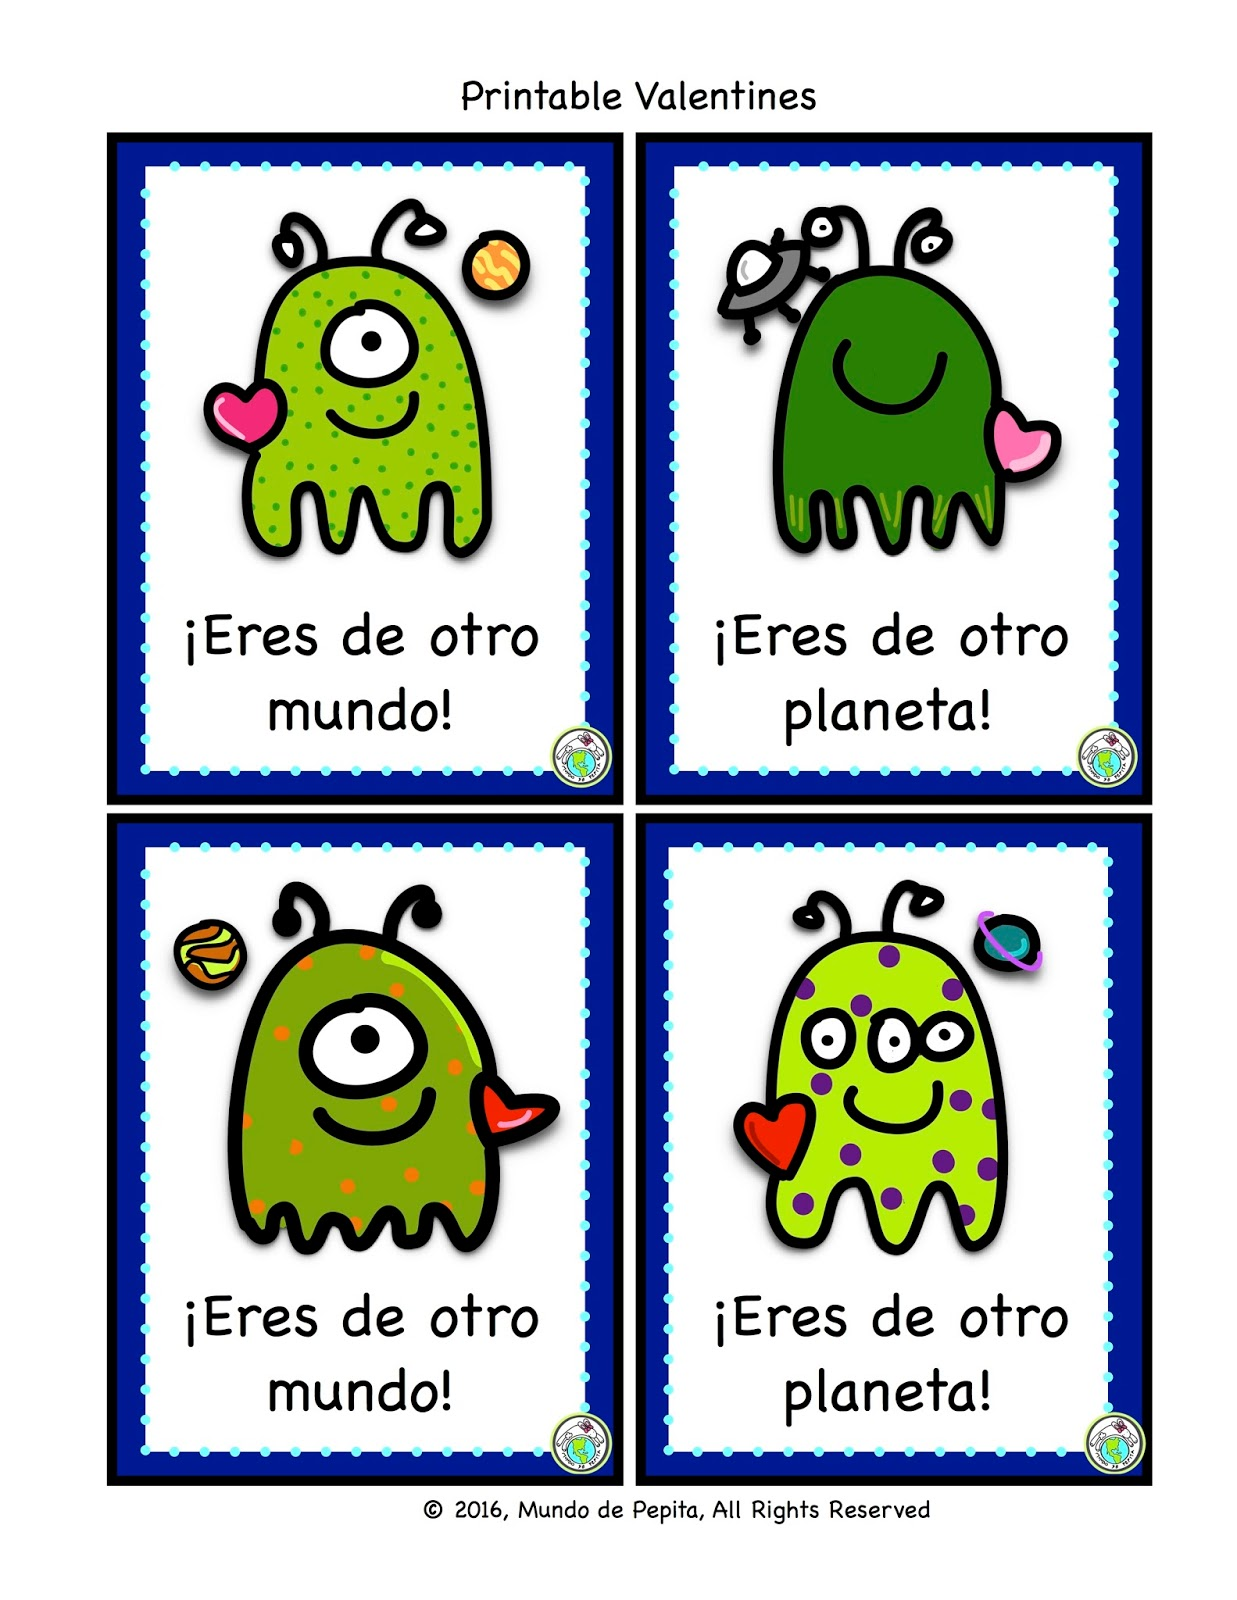 Printable Spanish Valentines For Kids